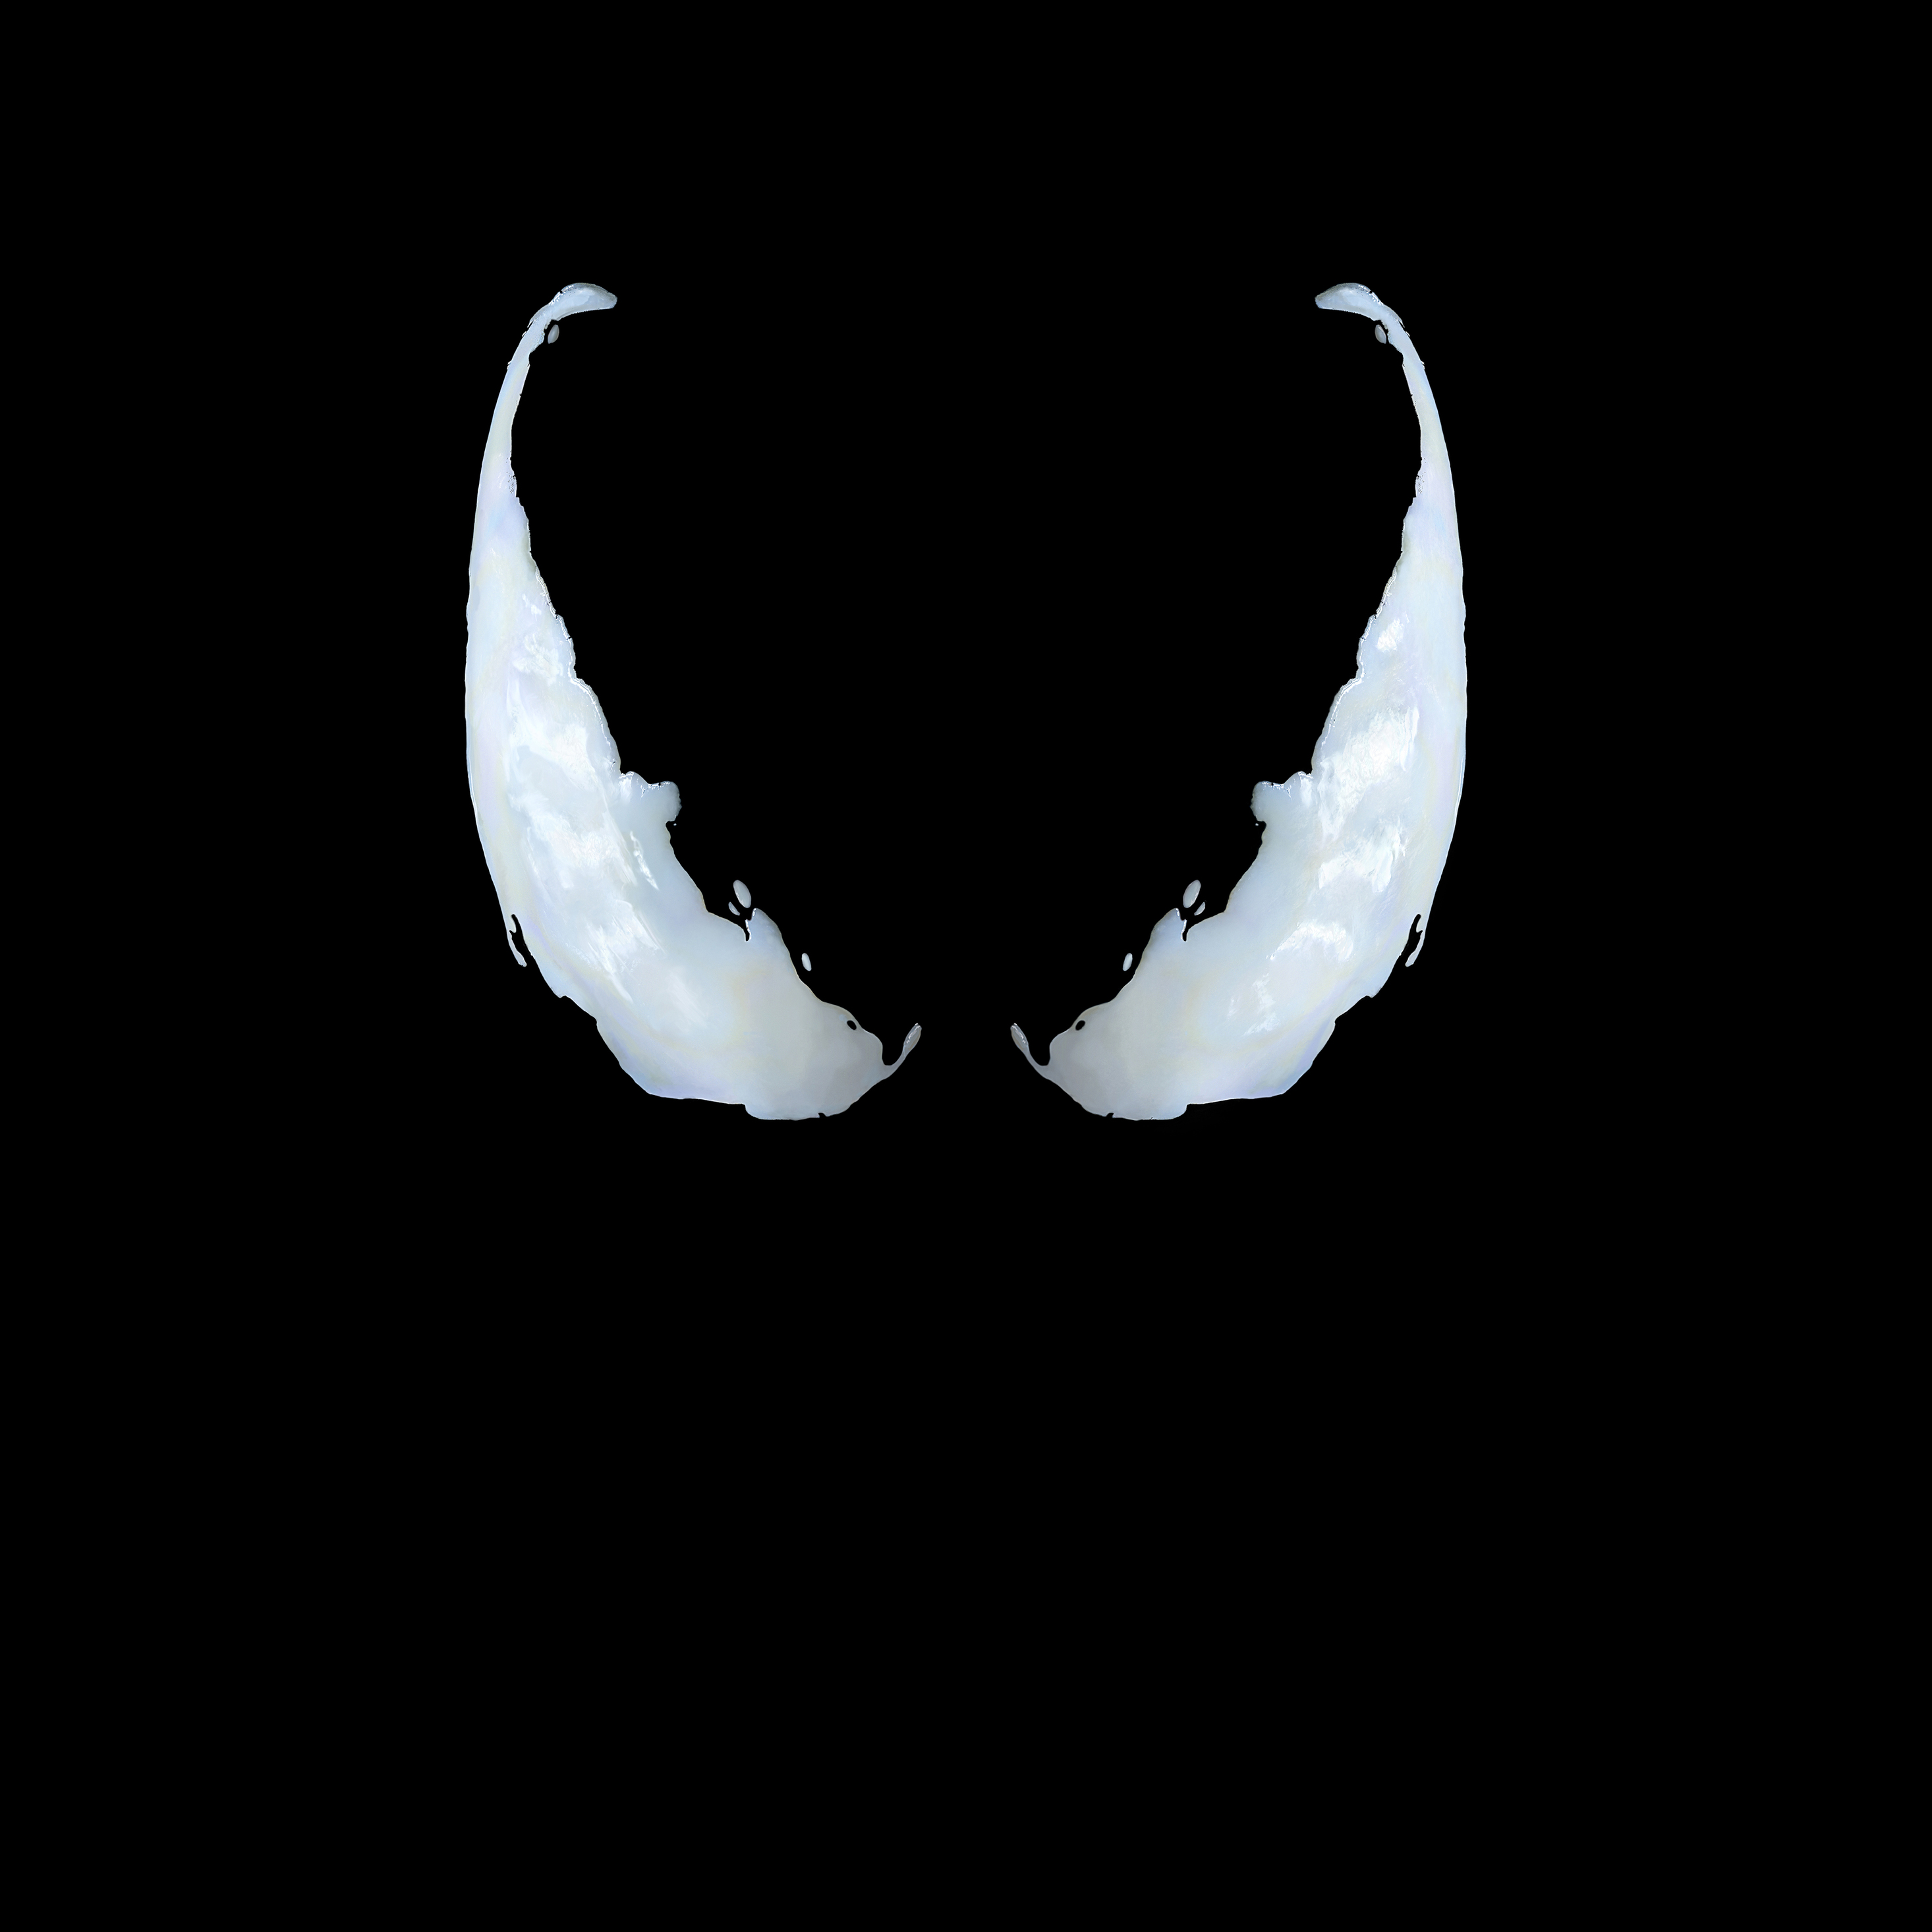 2932x2932 Venom Logo 8k Ipad Pro Retina Display Hd 4k Wallpapers Images Backgrounds Photos And Pictures